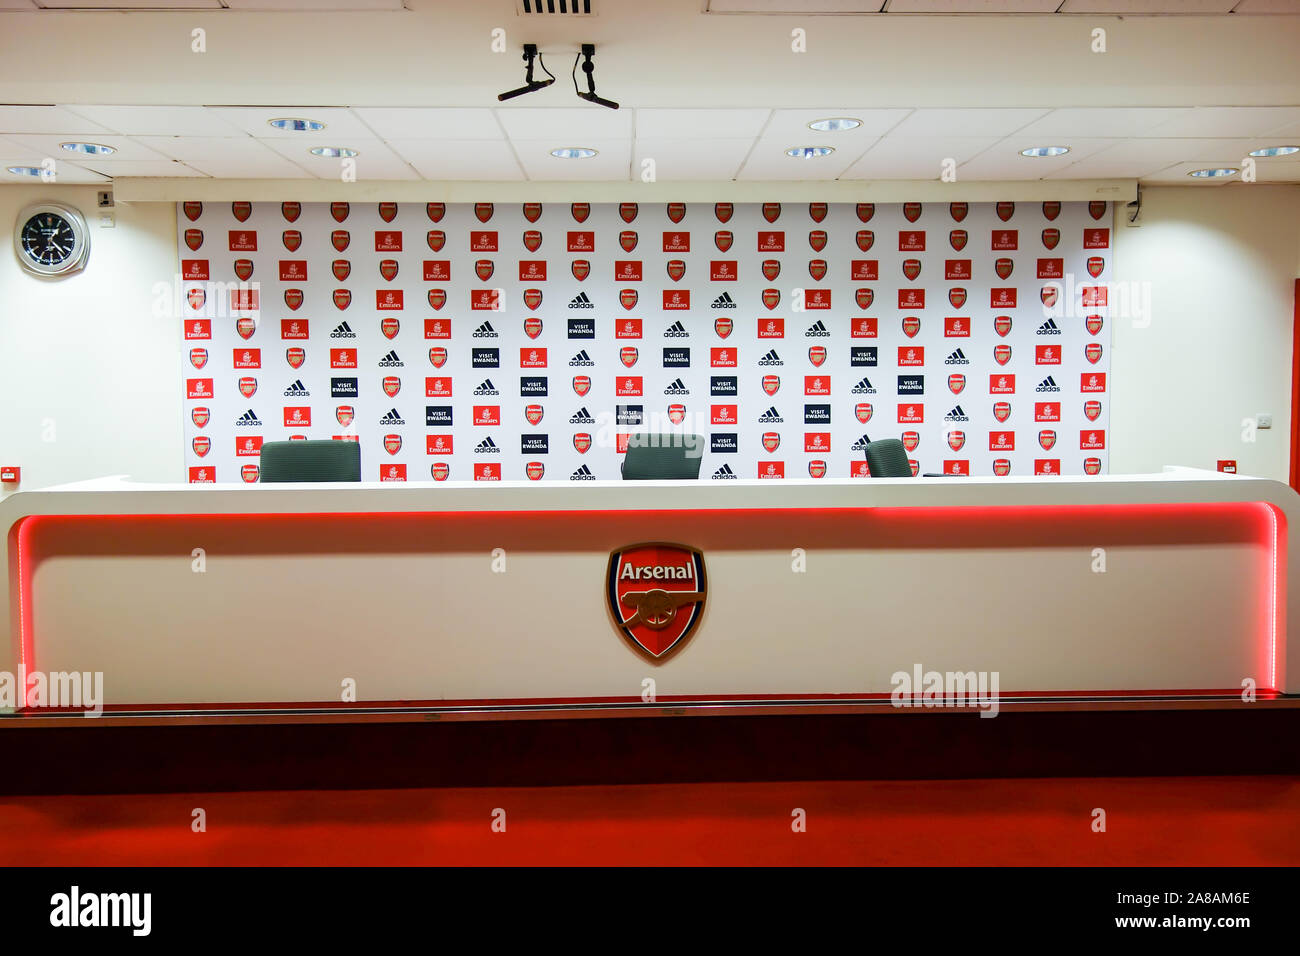 LONDON, UK - OCT 5TH 2019: The Press Room on display to the public at the Arsenal Emirates Stadium Tour. Stock Photo